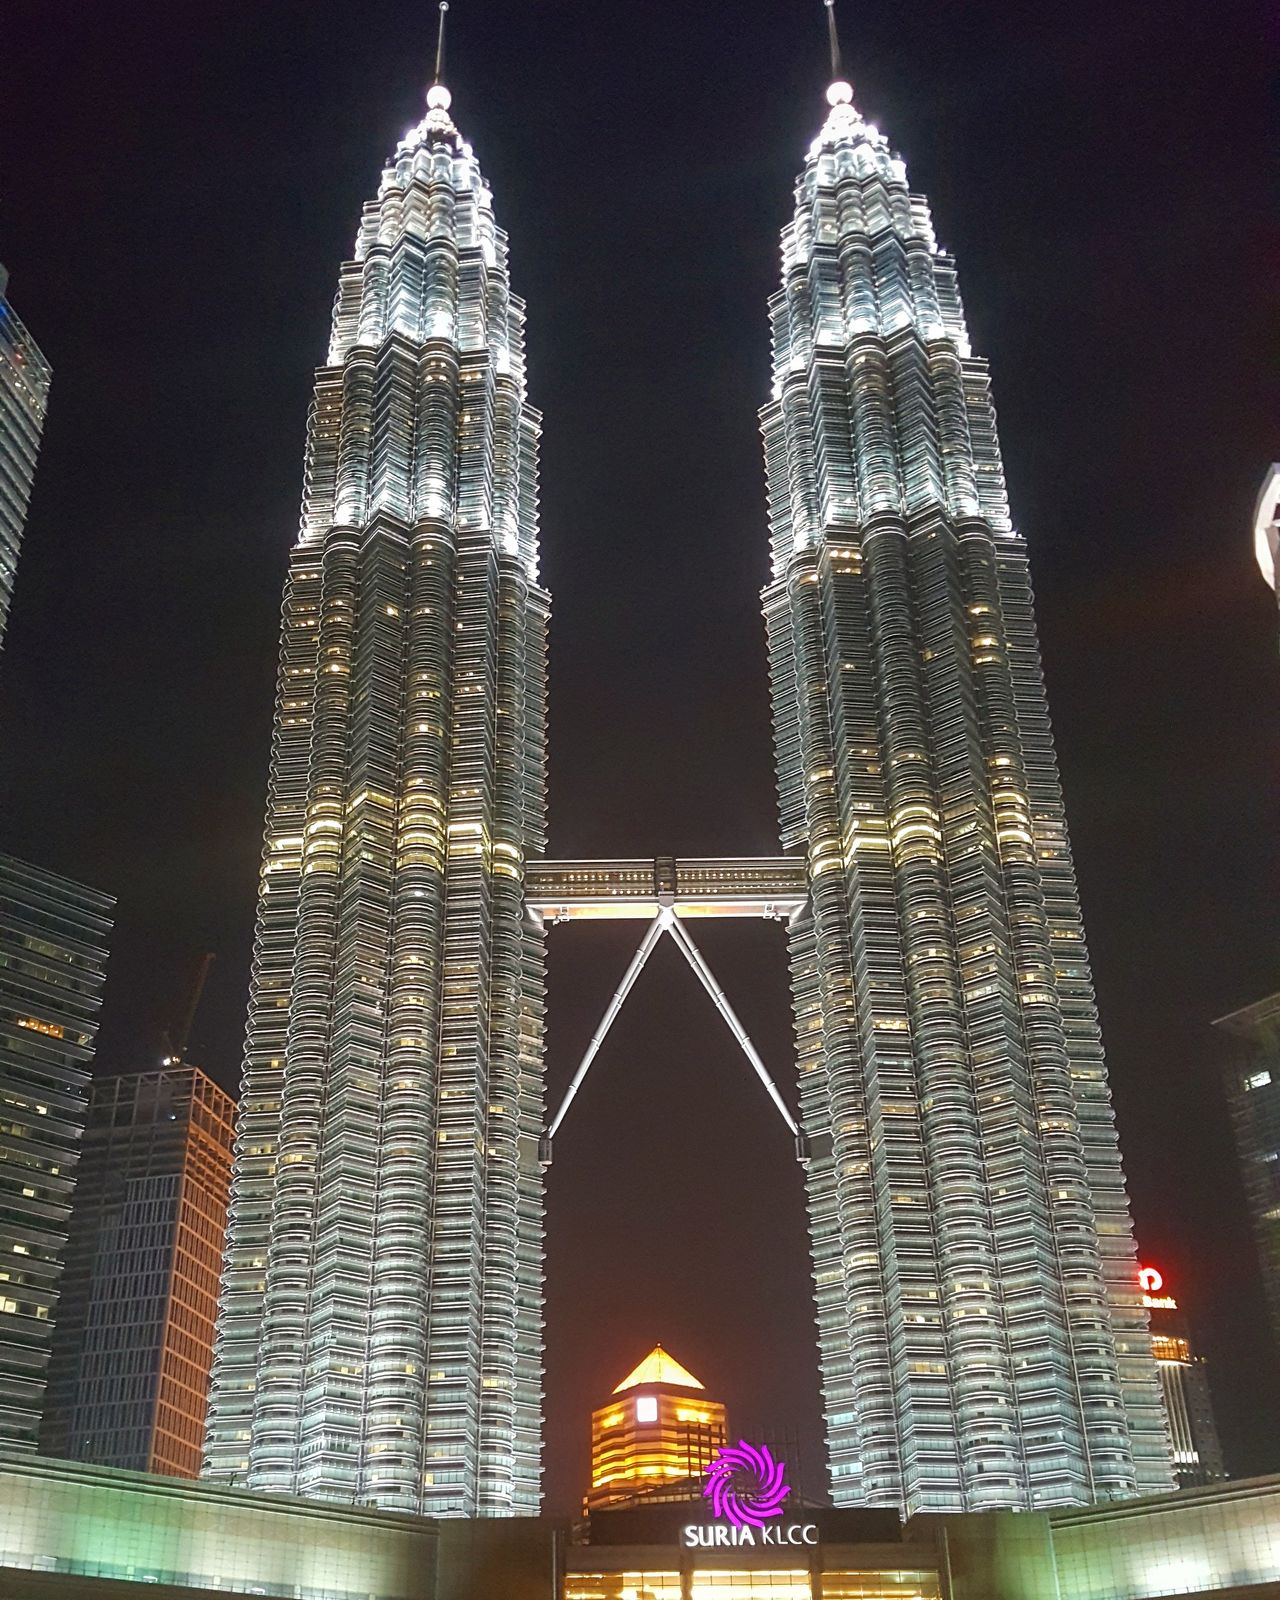 Architecture City Travel Destinations Skyscraper Travel Night Built Structure Building Exterior Low Angle View Sky Cityscape No People Modern Outdoors Cultures KLCC Twin Towers Street Photography Streetphotography Kuala Lumpur, Malaysia KLCC Tower